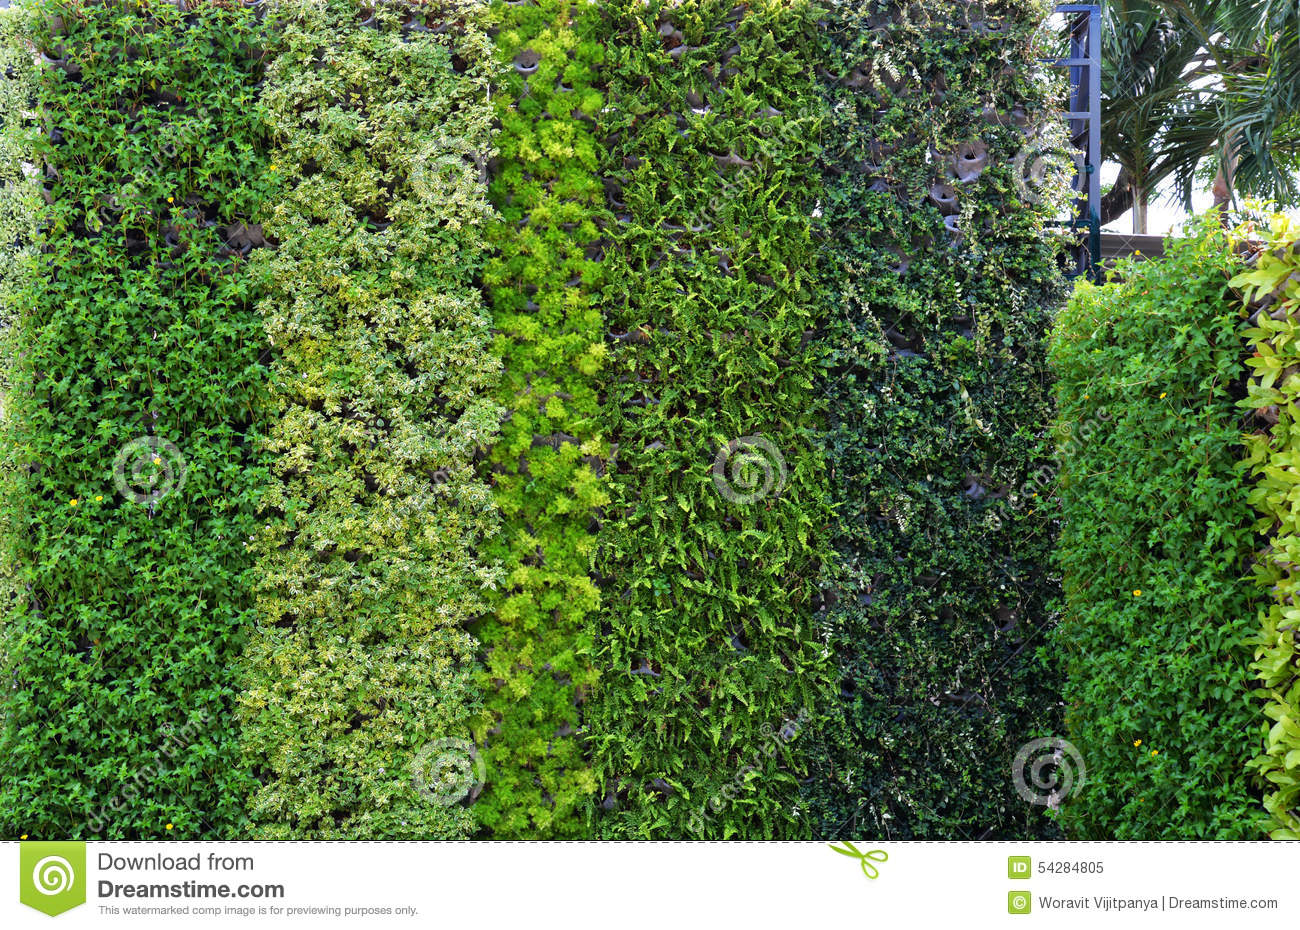 Plant wall in the garden stock image. Image of bush, wall